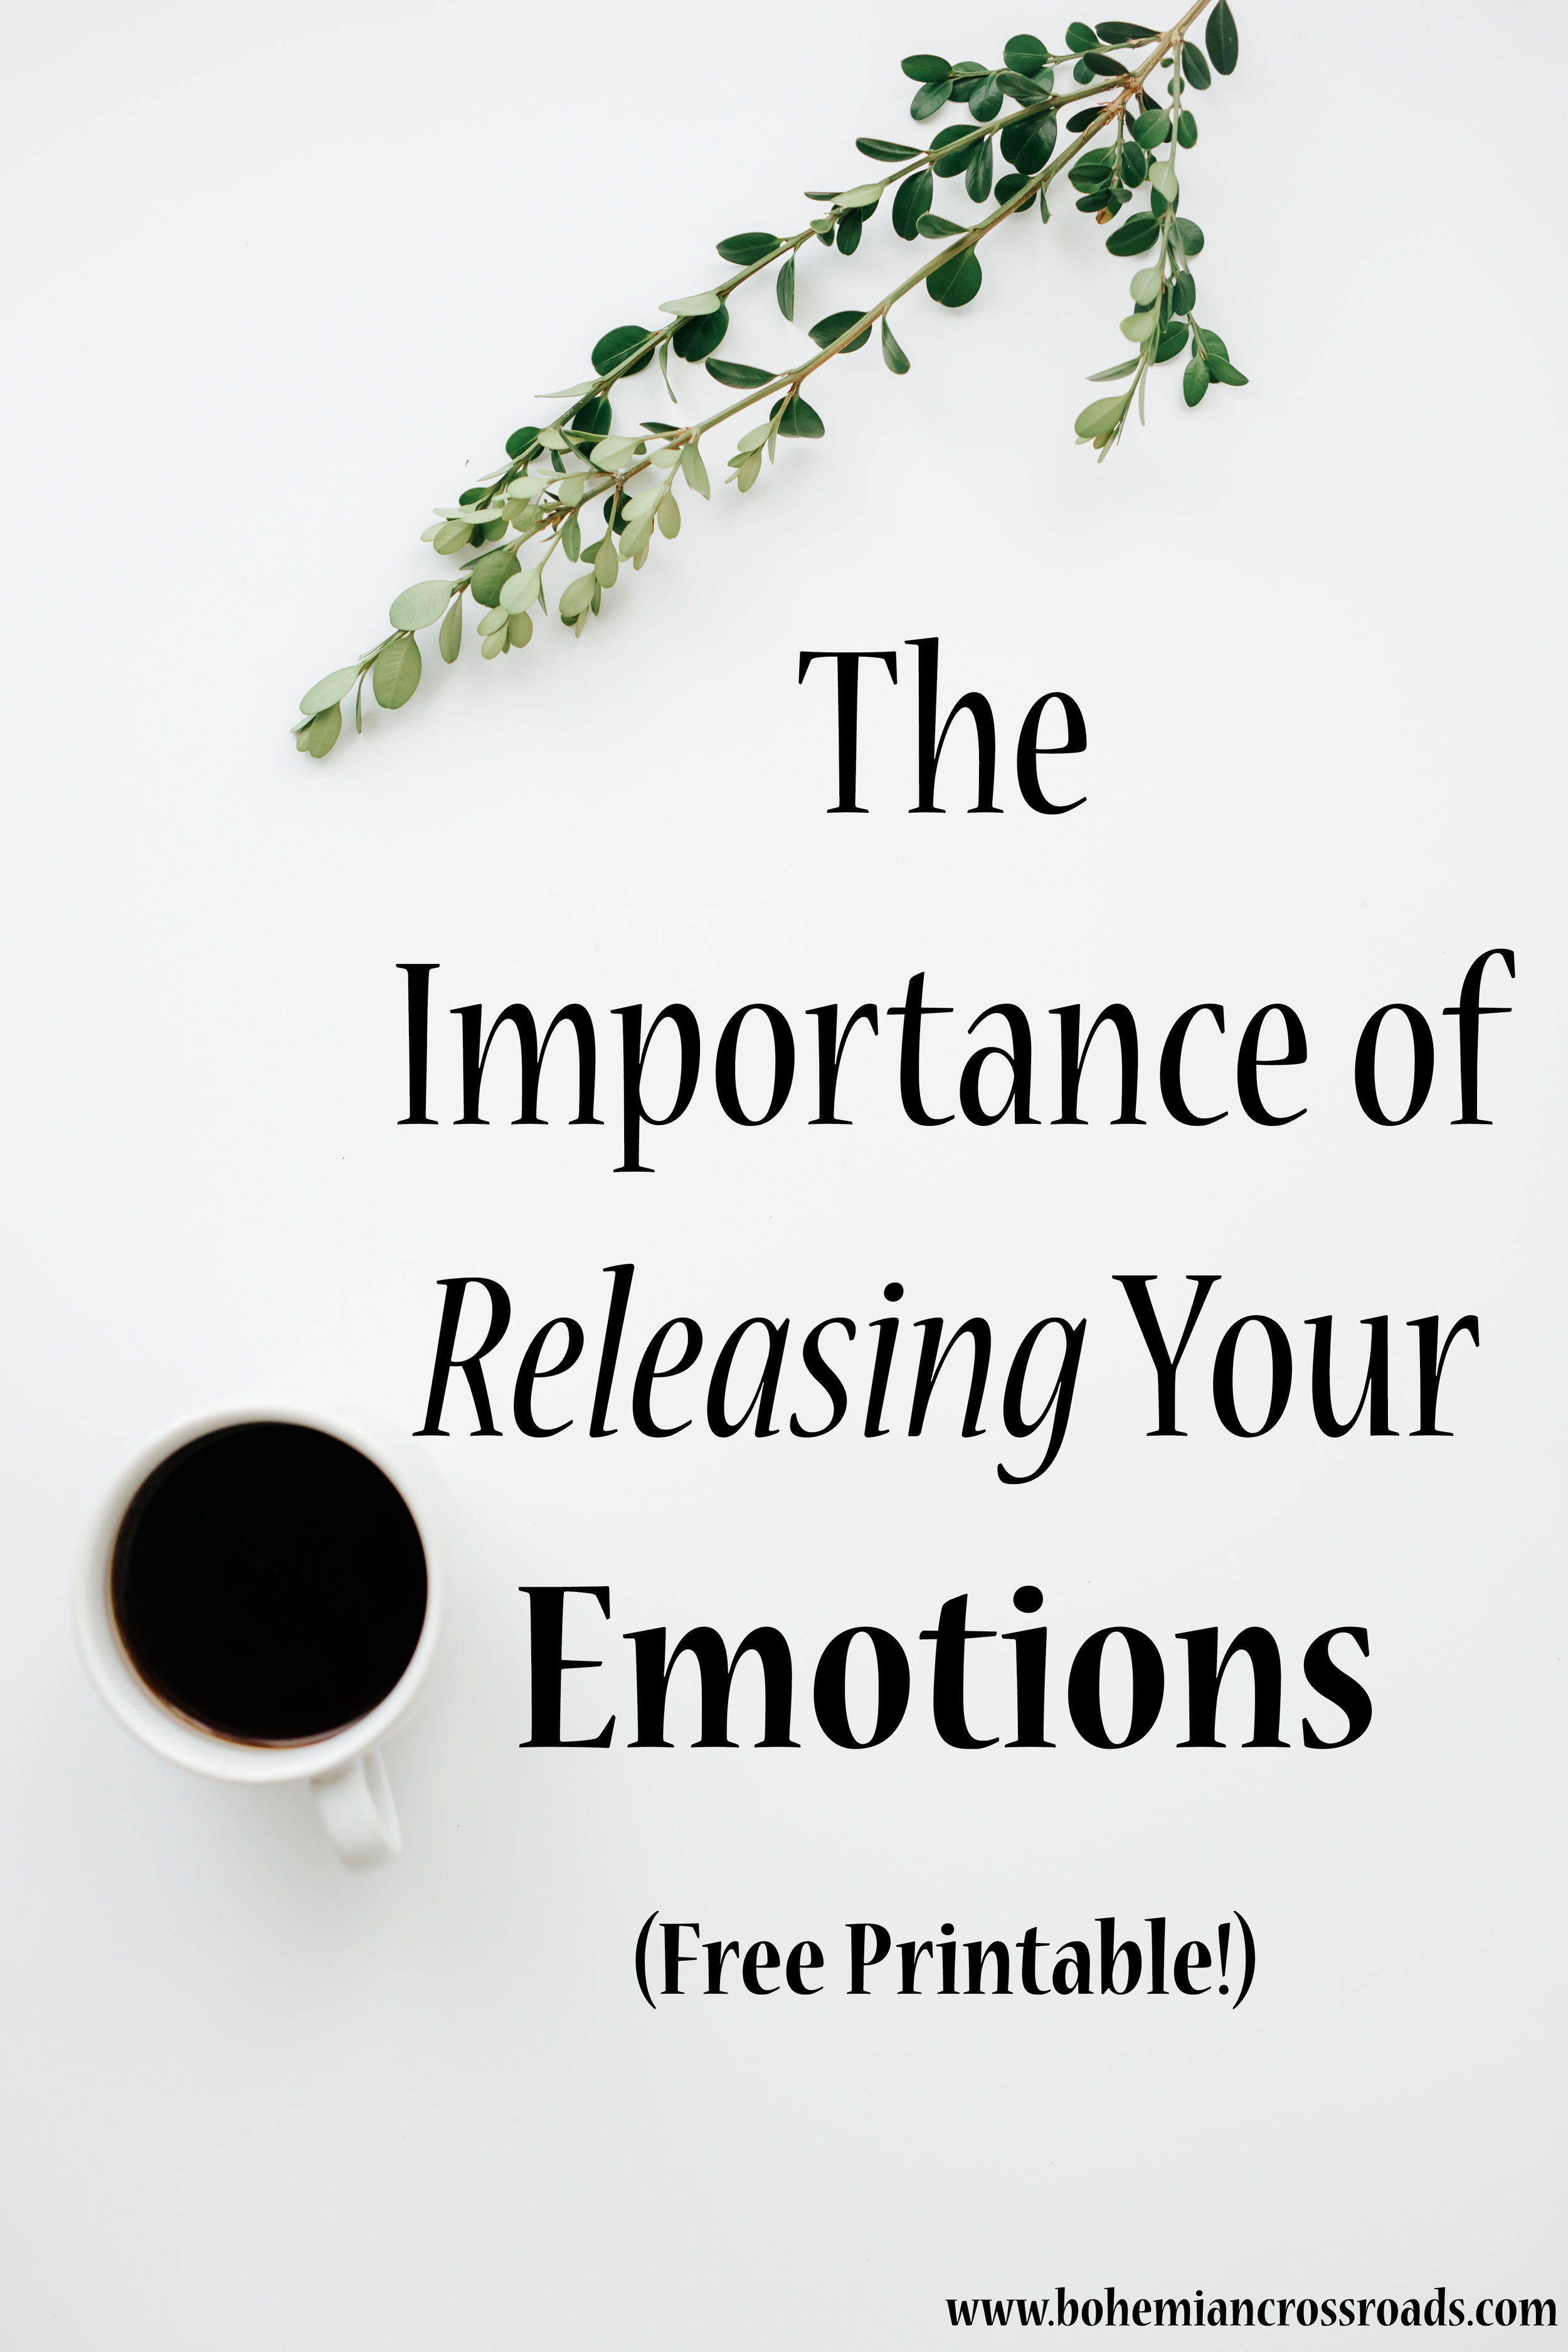 release-your-emotions.jpg